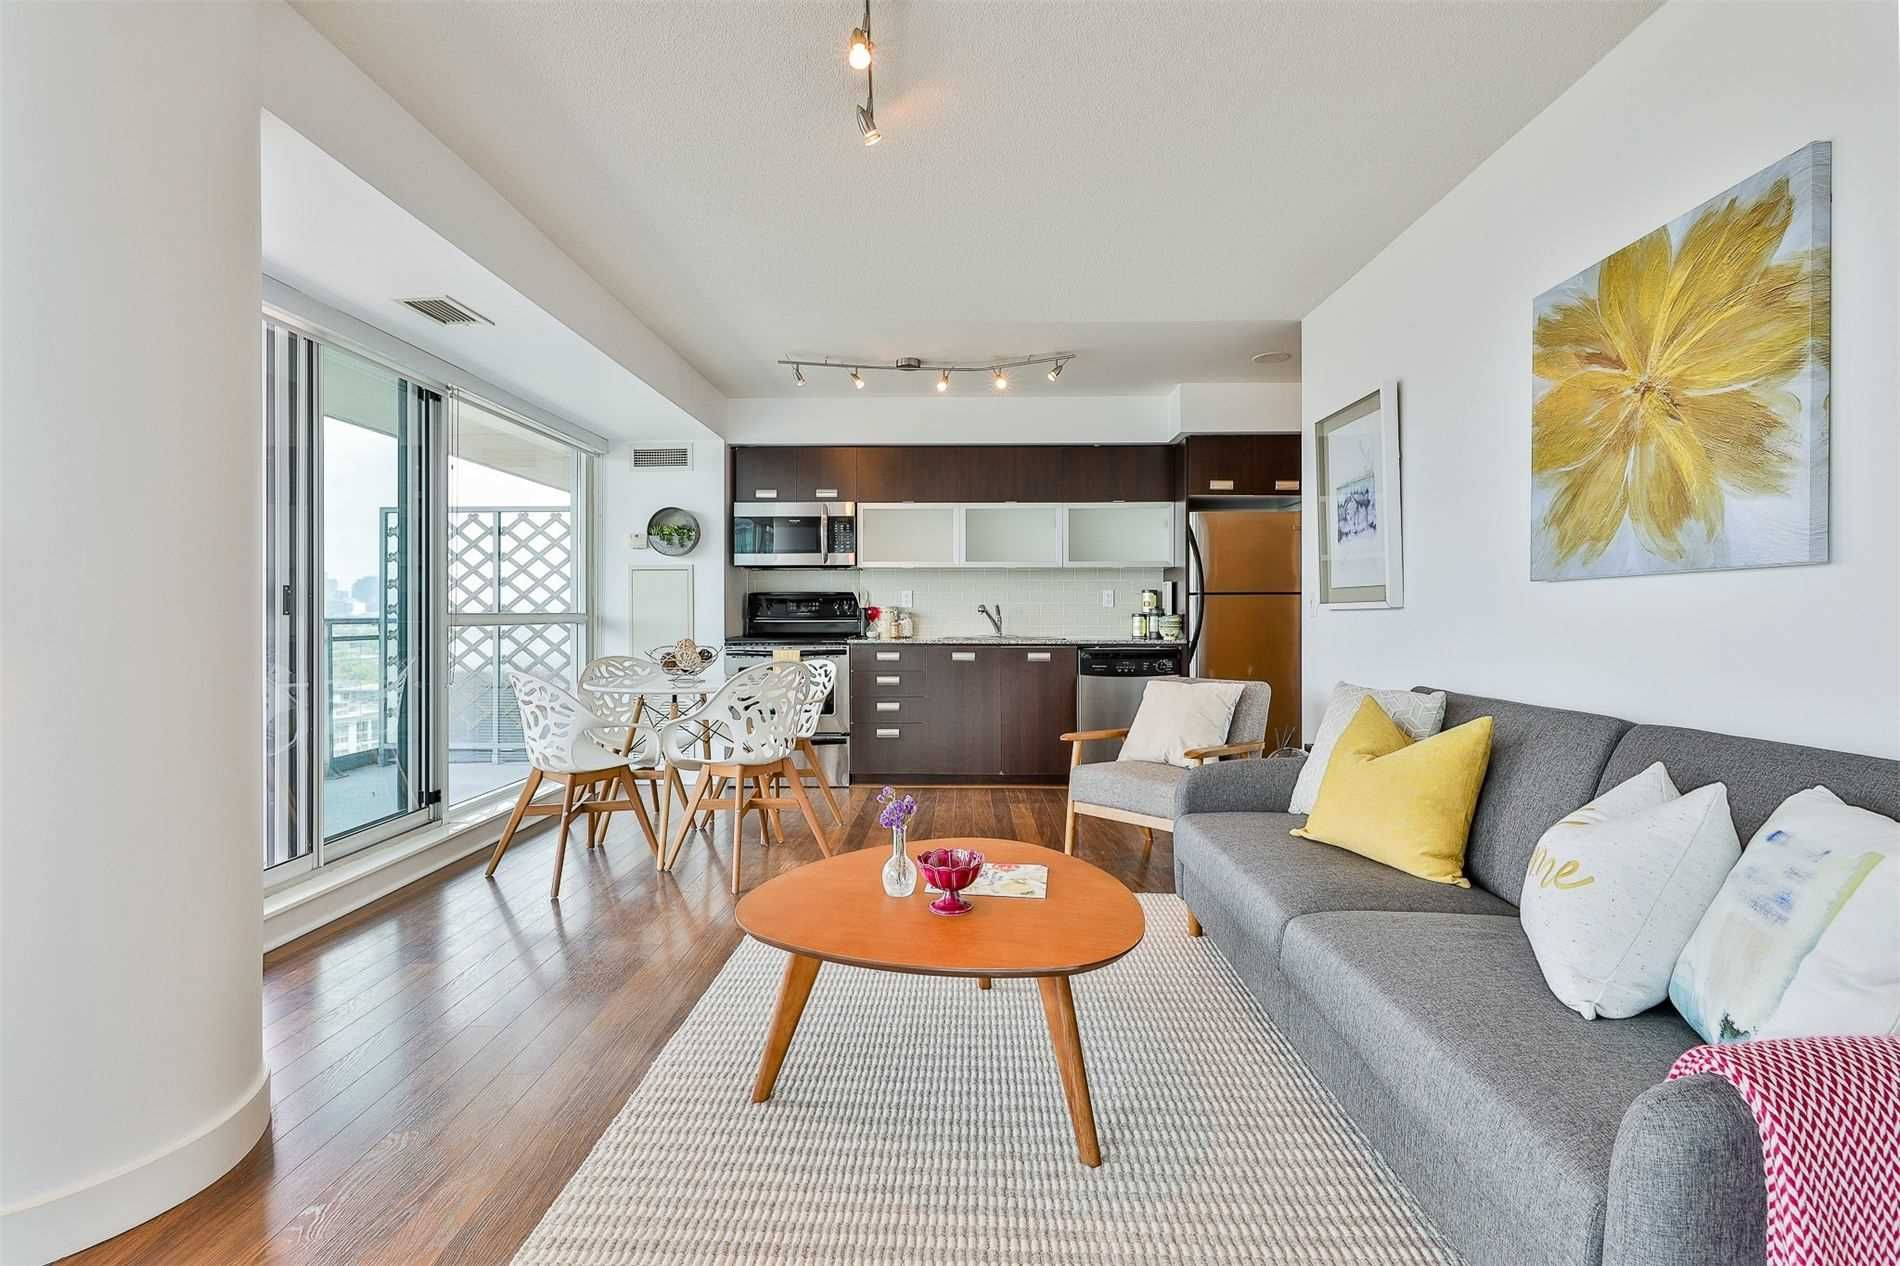 80 Western Battery Rd, unit 1404 for sale in Toronto - image #2